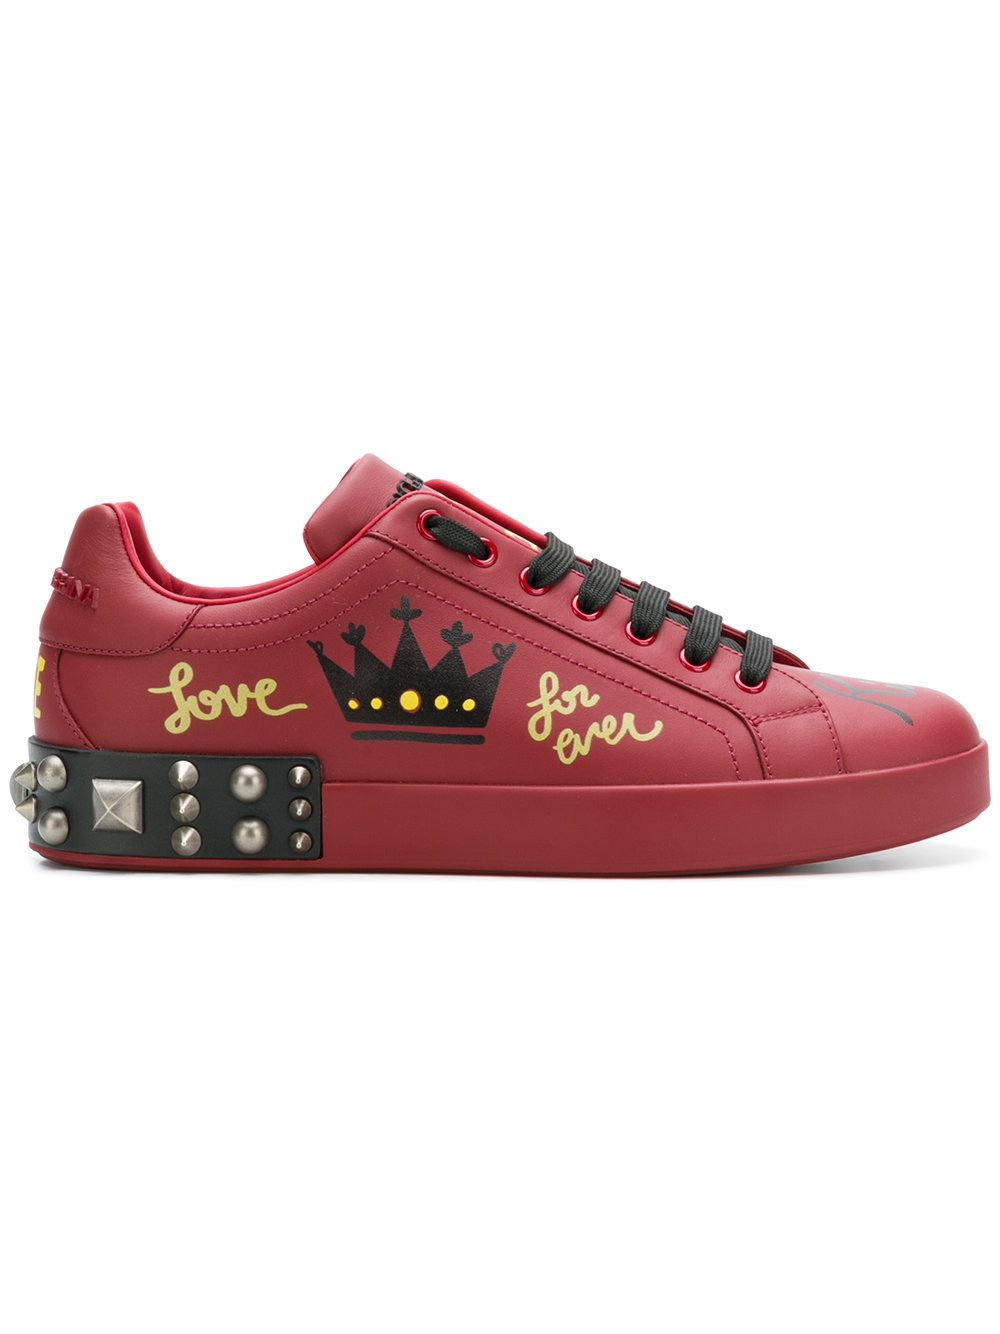 a999bd38 Dolce & Gabbana Printed studded sneakers | Shoes | Studded sneakers ...